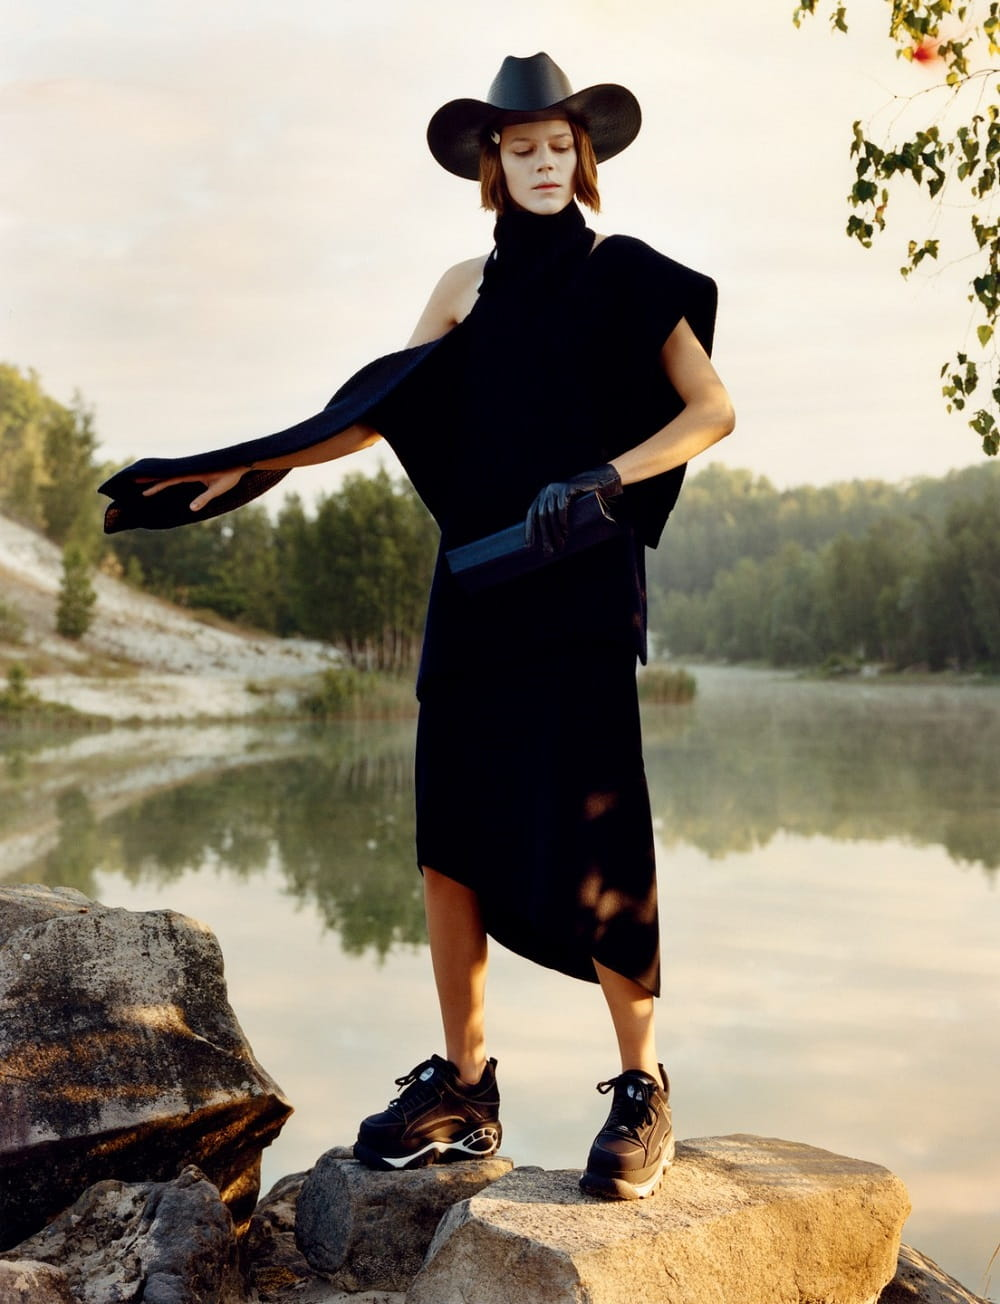 Freja-Beha-Erichsen-by-Jamie-Hawkesworth-for-BritishVogue-Dec2018-04.jpg